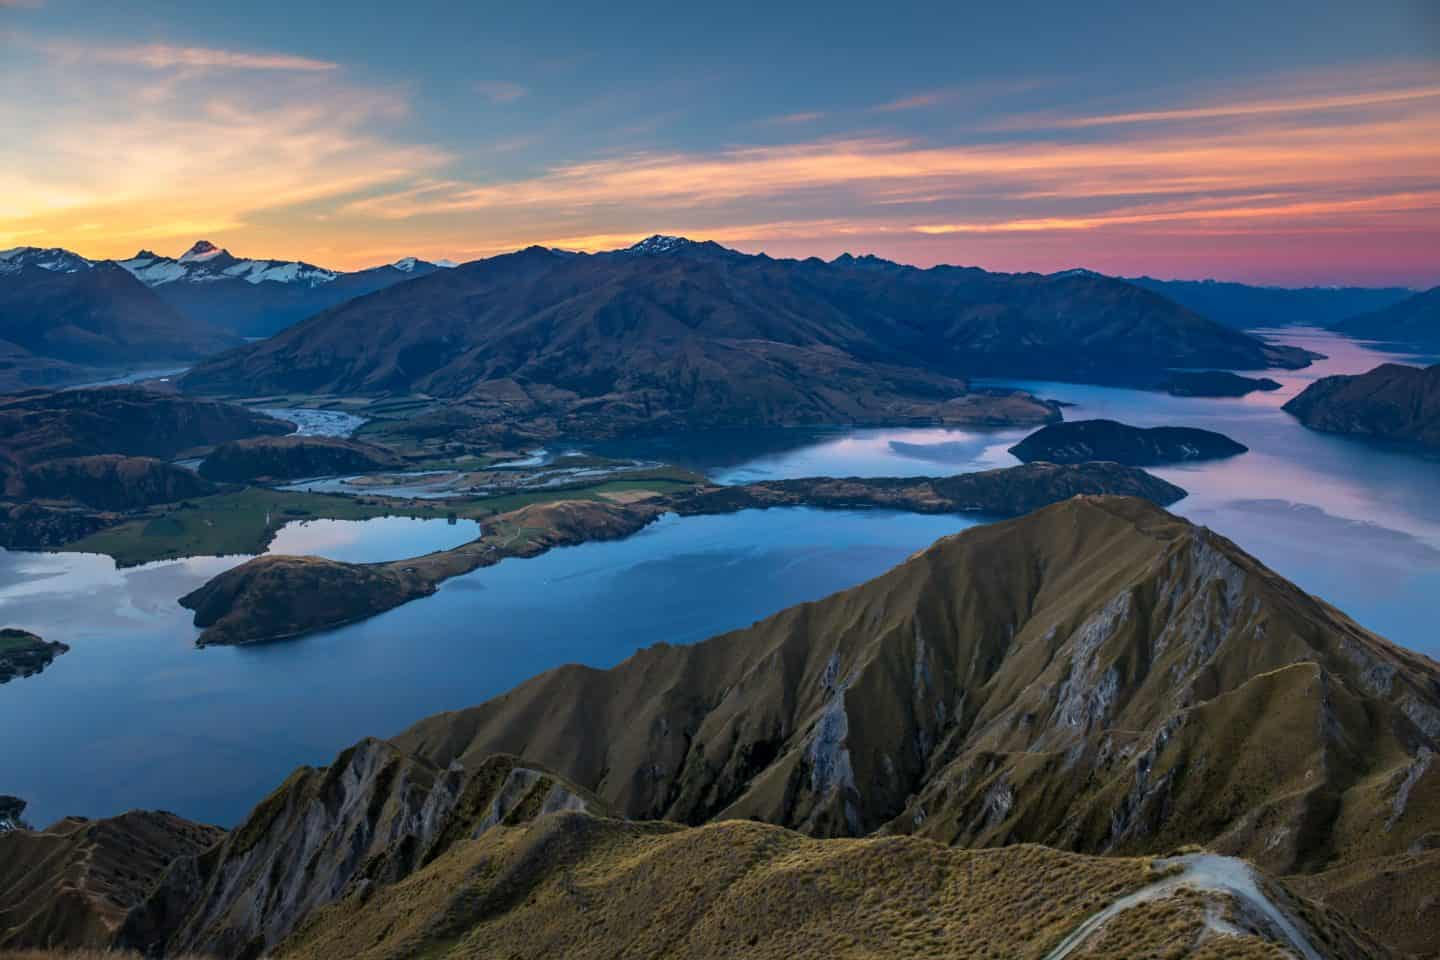 Roys Peak sunset photography is beautiful but challenging as the scenery will be in shadow long before the sky gets its color.